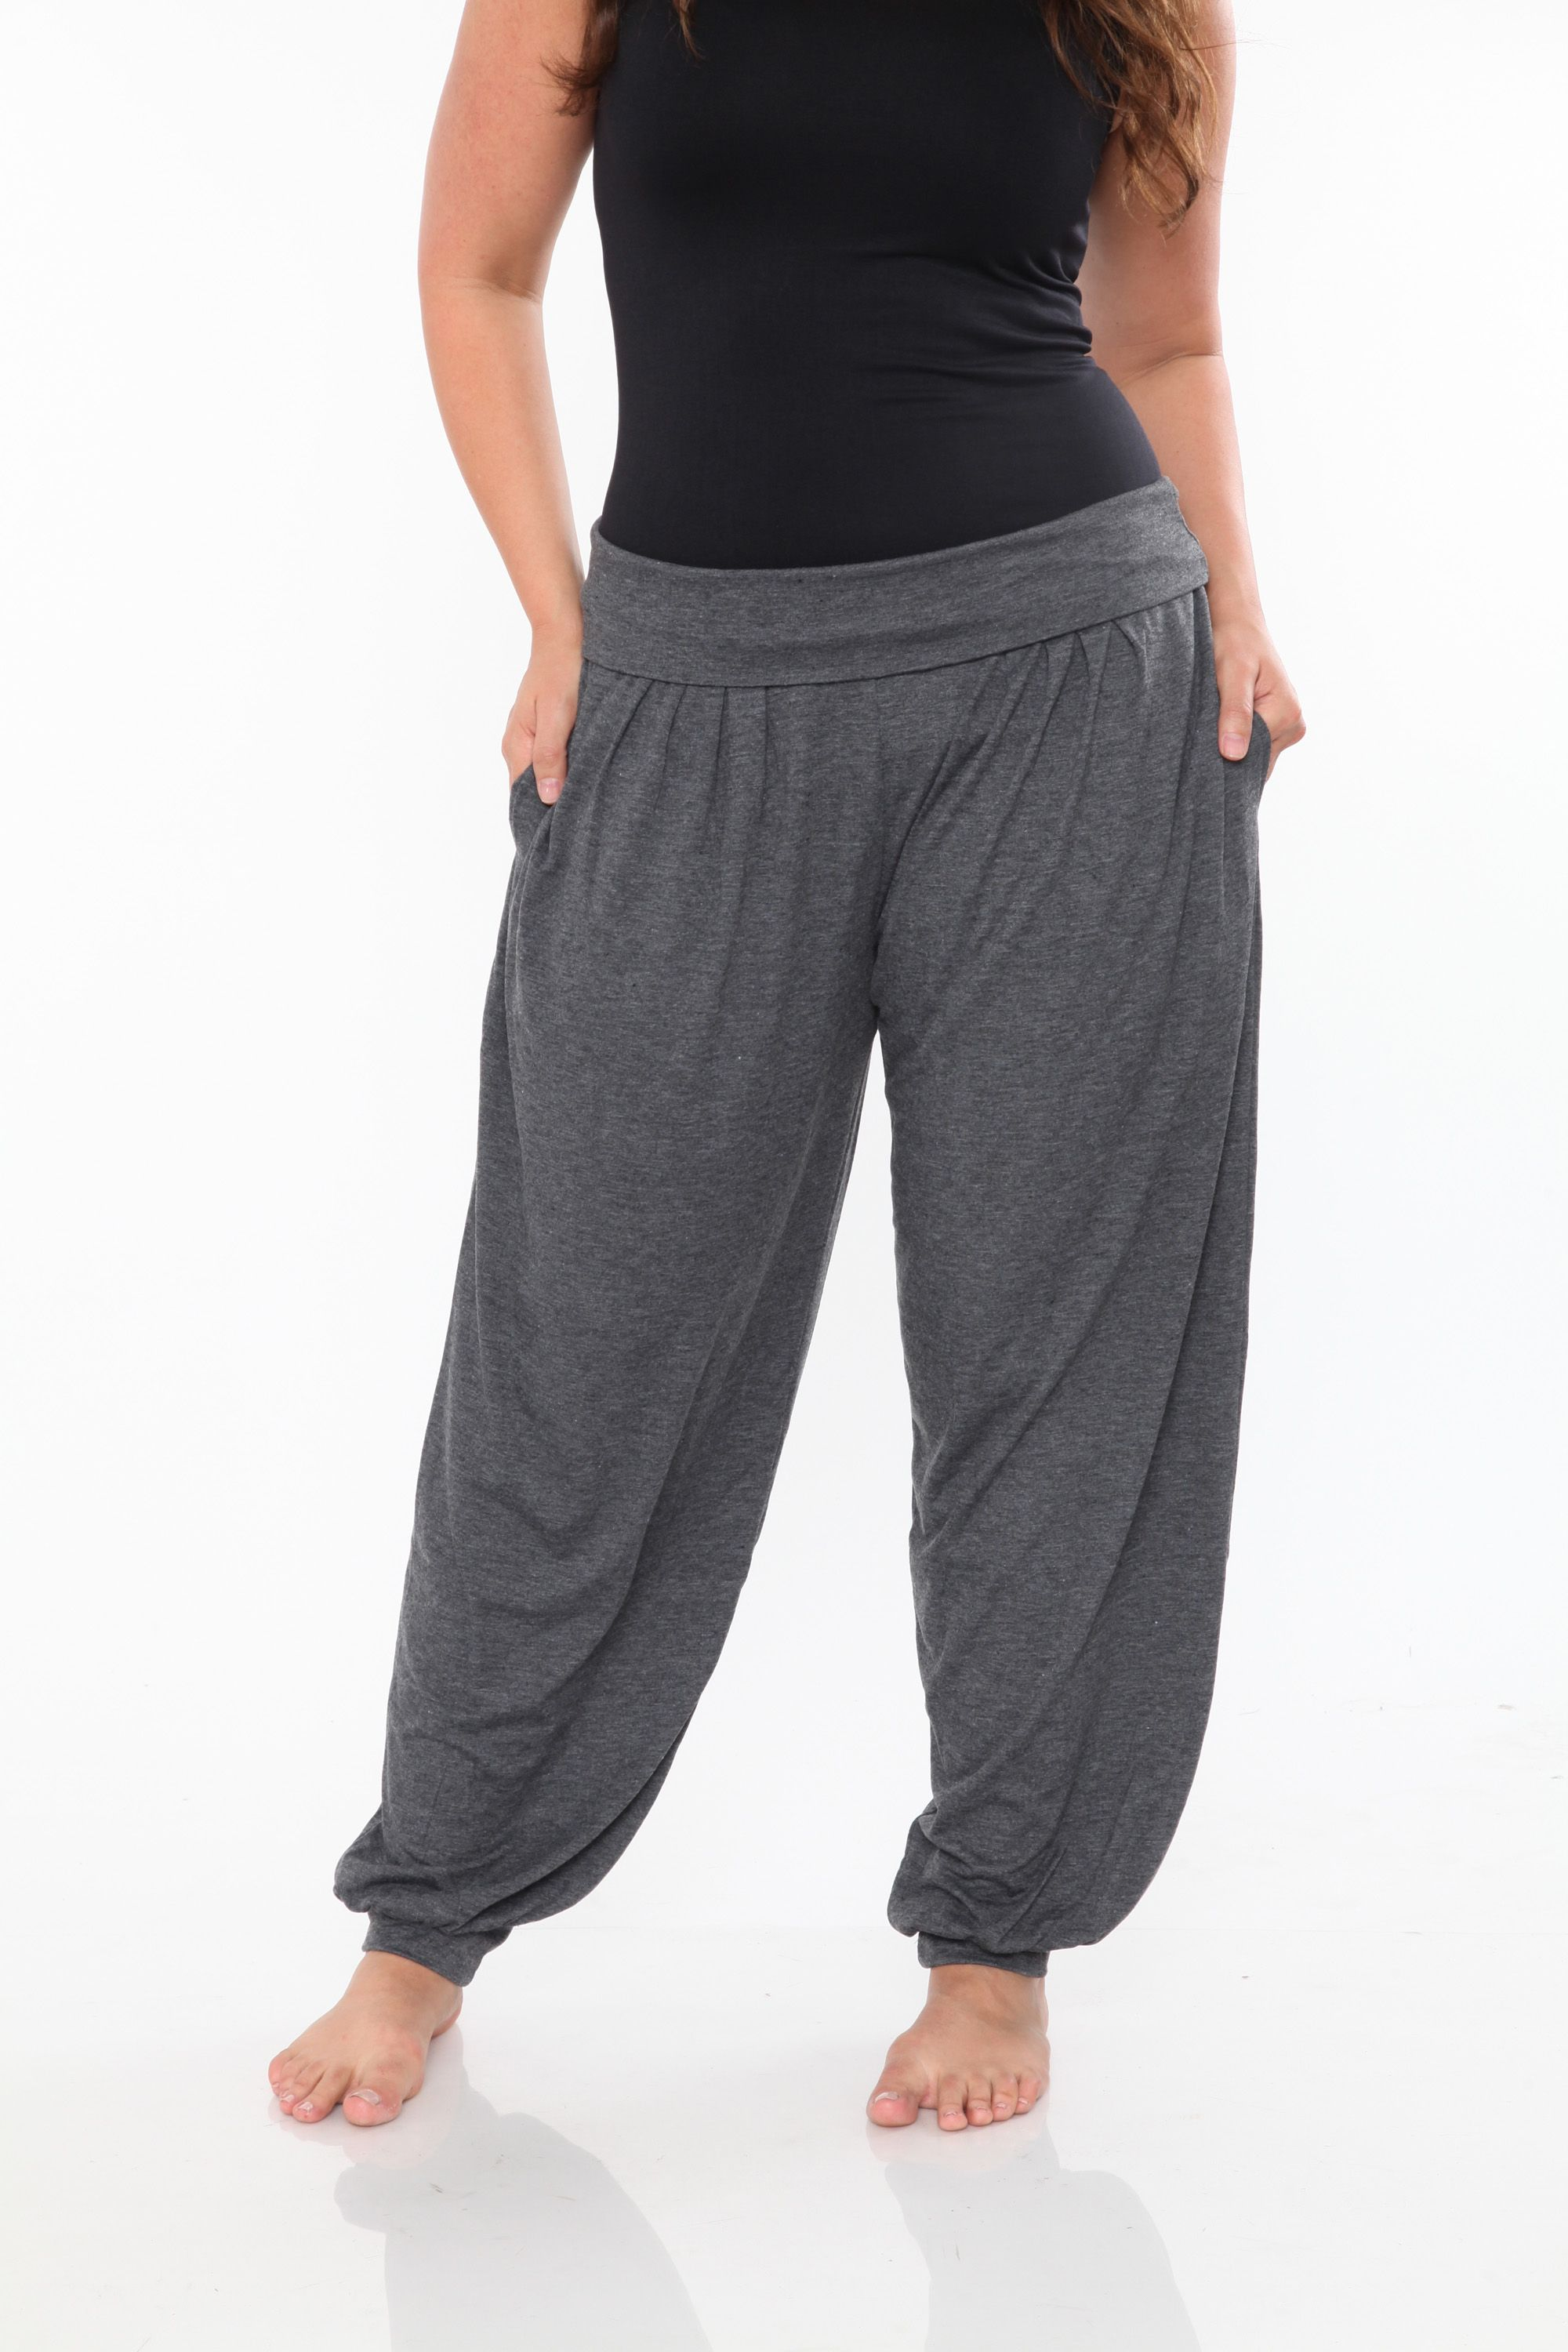 Plus Size Charcoal Harem Pants Check Out Our Amazing Collection Of